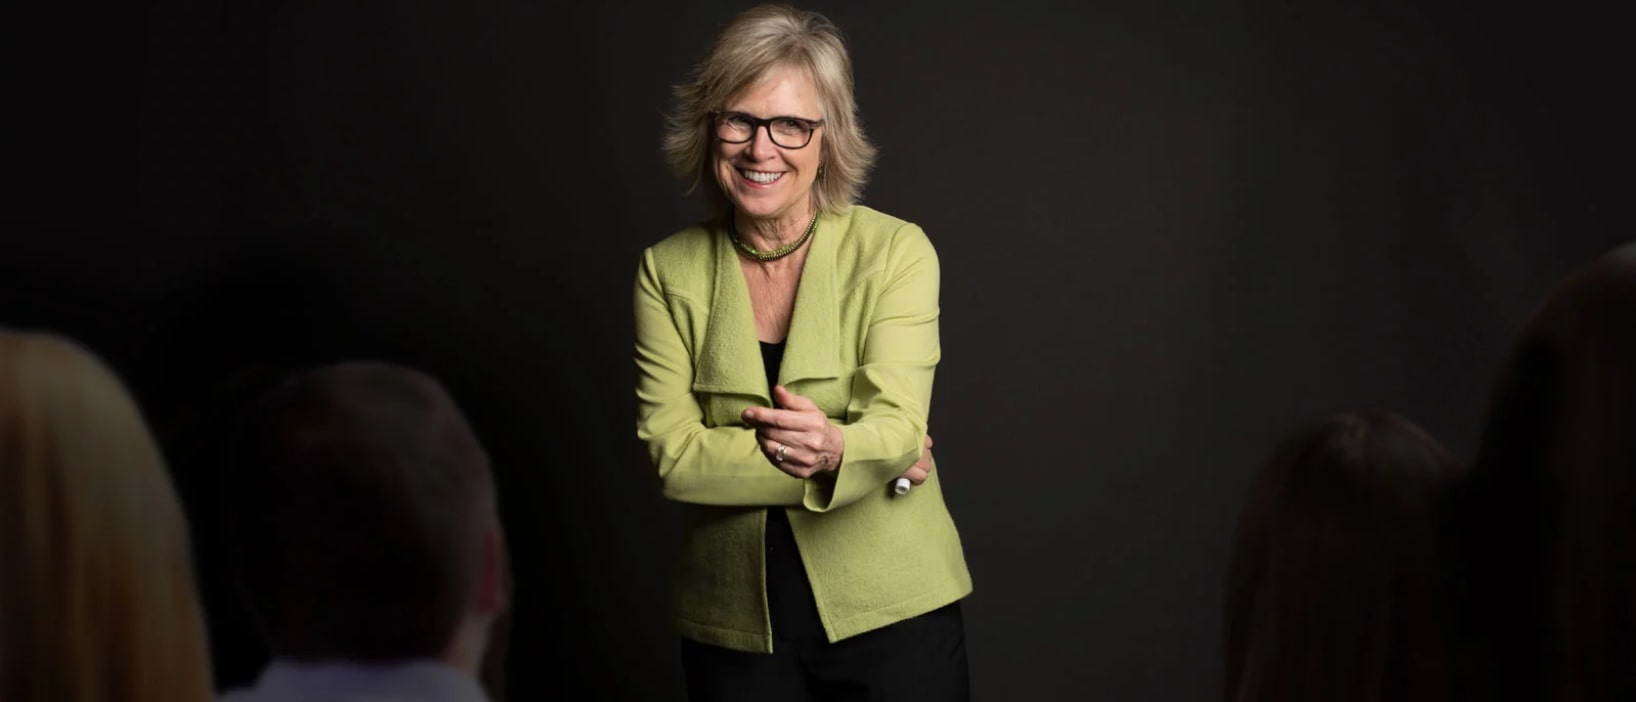 sales-advice-tips-jill konrath